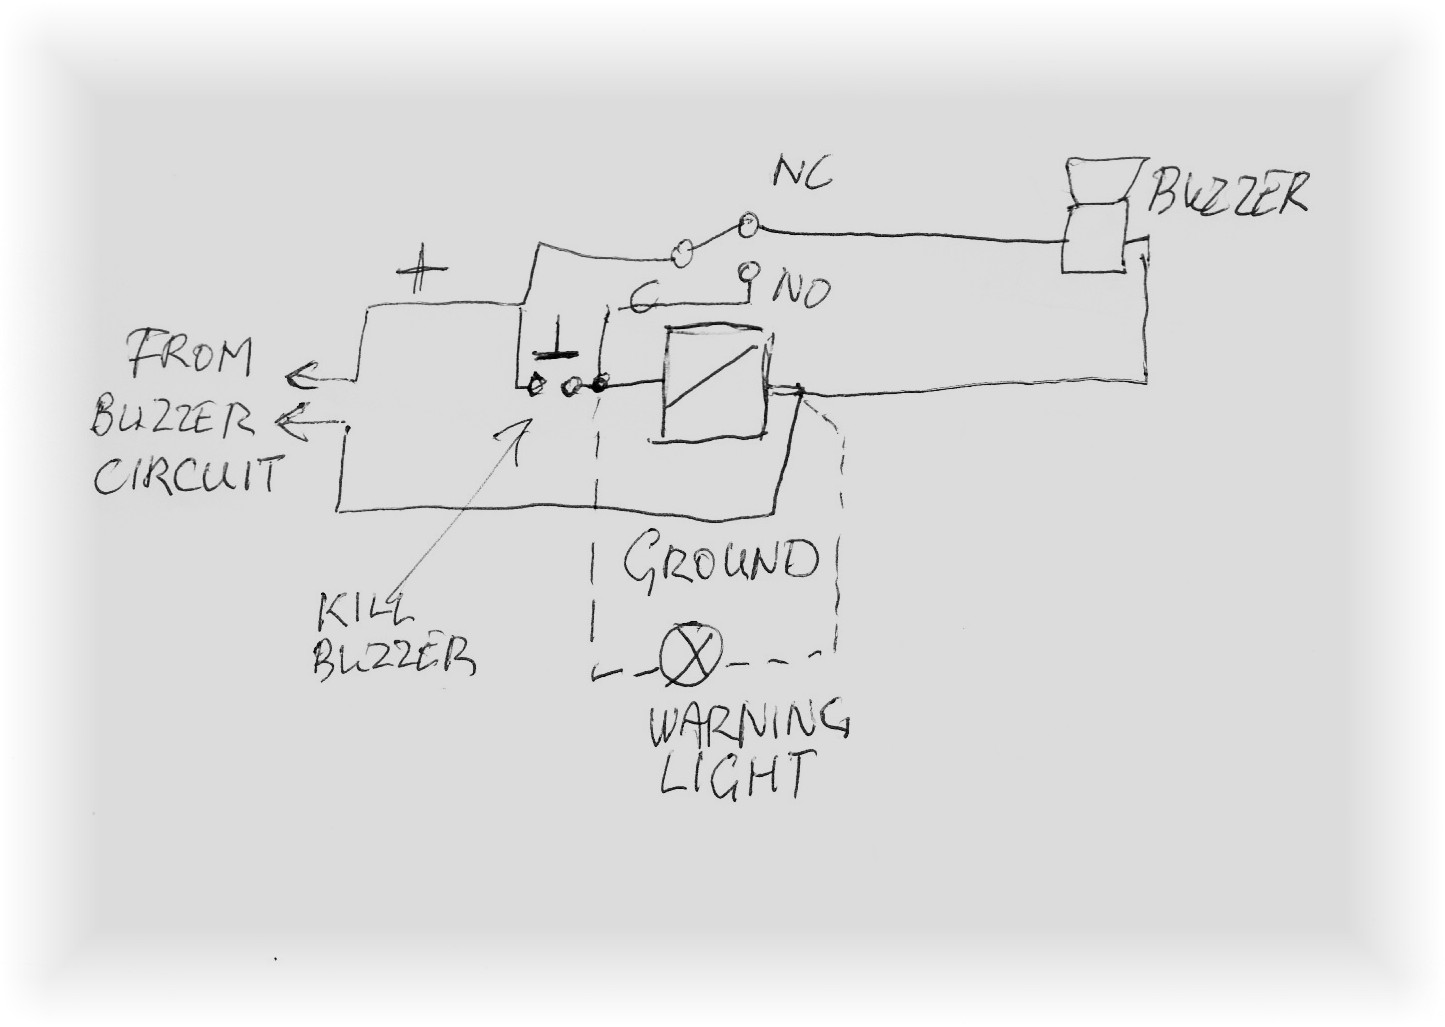 Buzzer Wiring Diagram Best Electrical Circuit Wiring